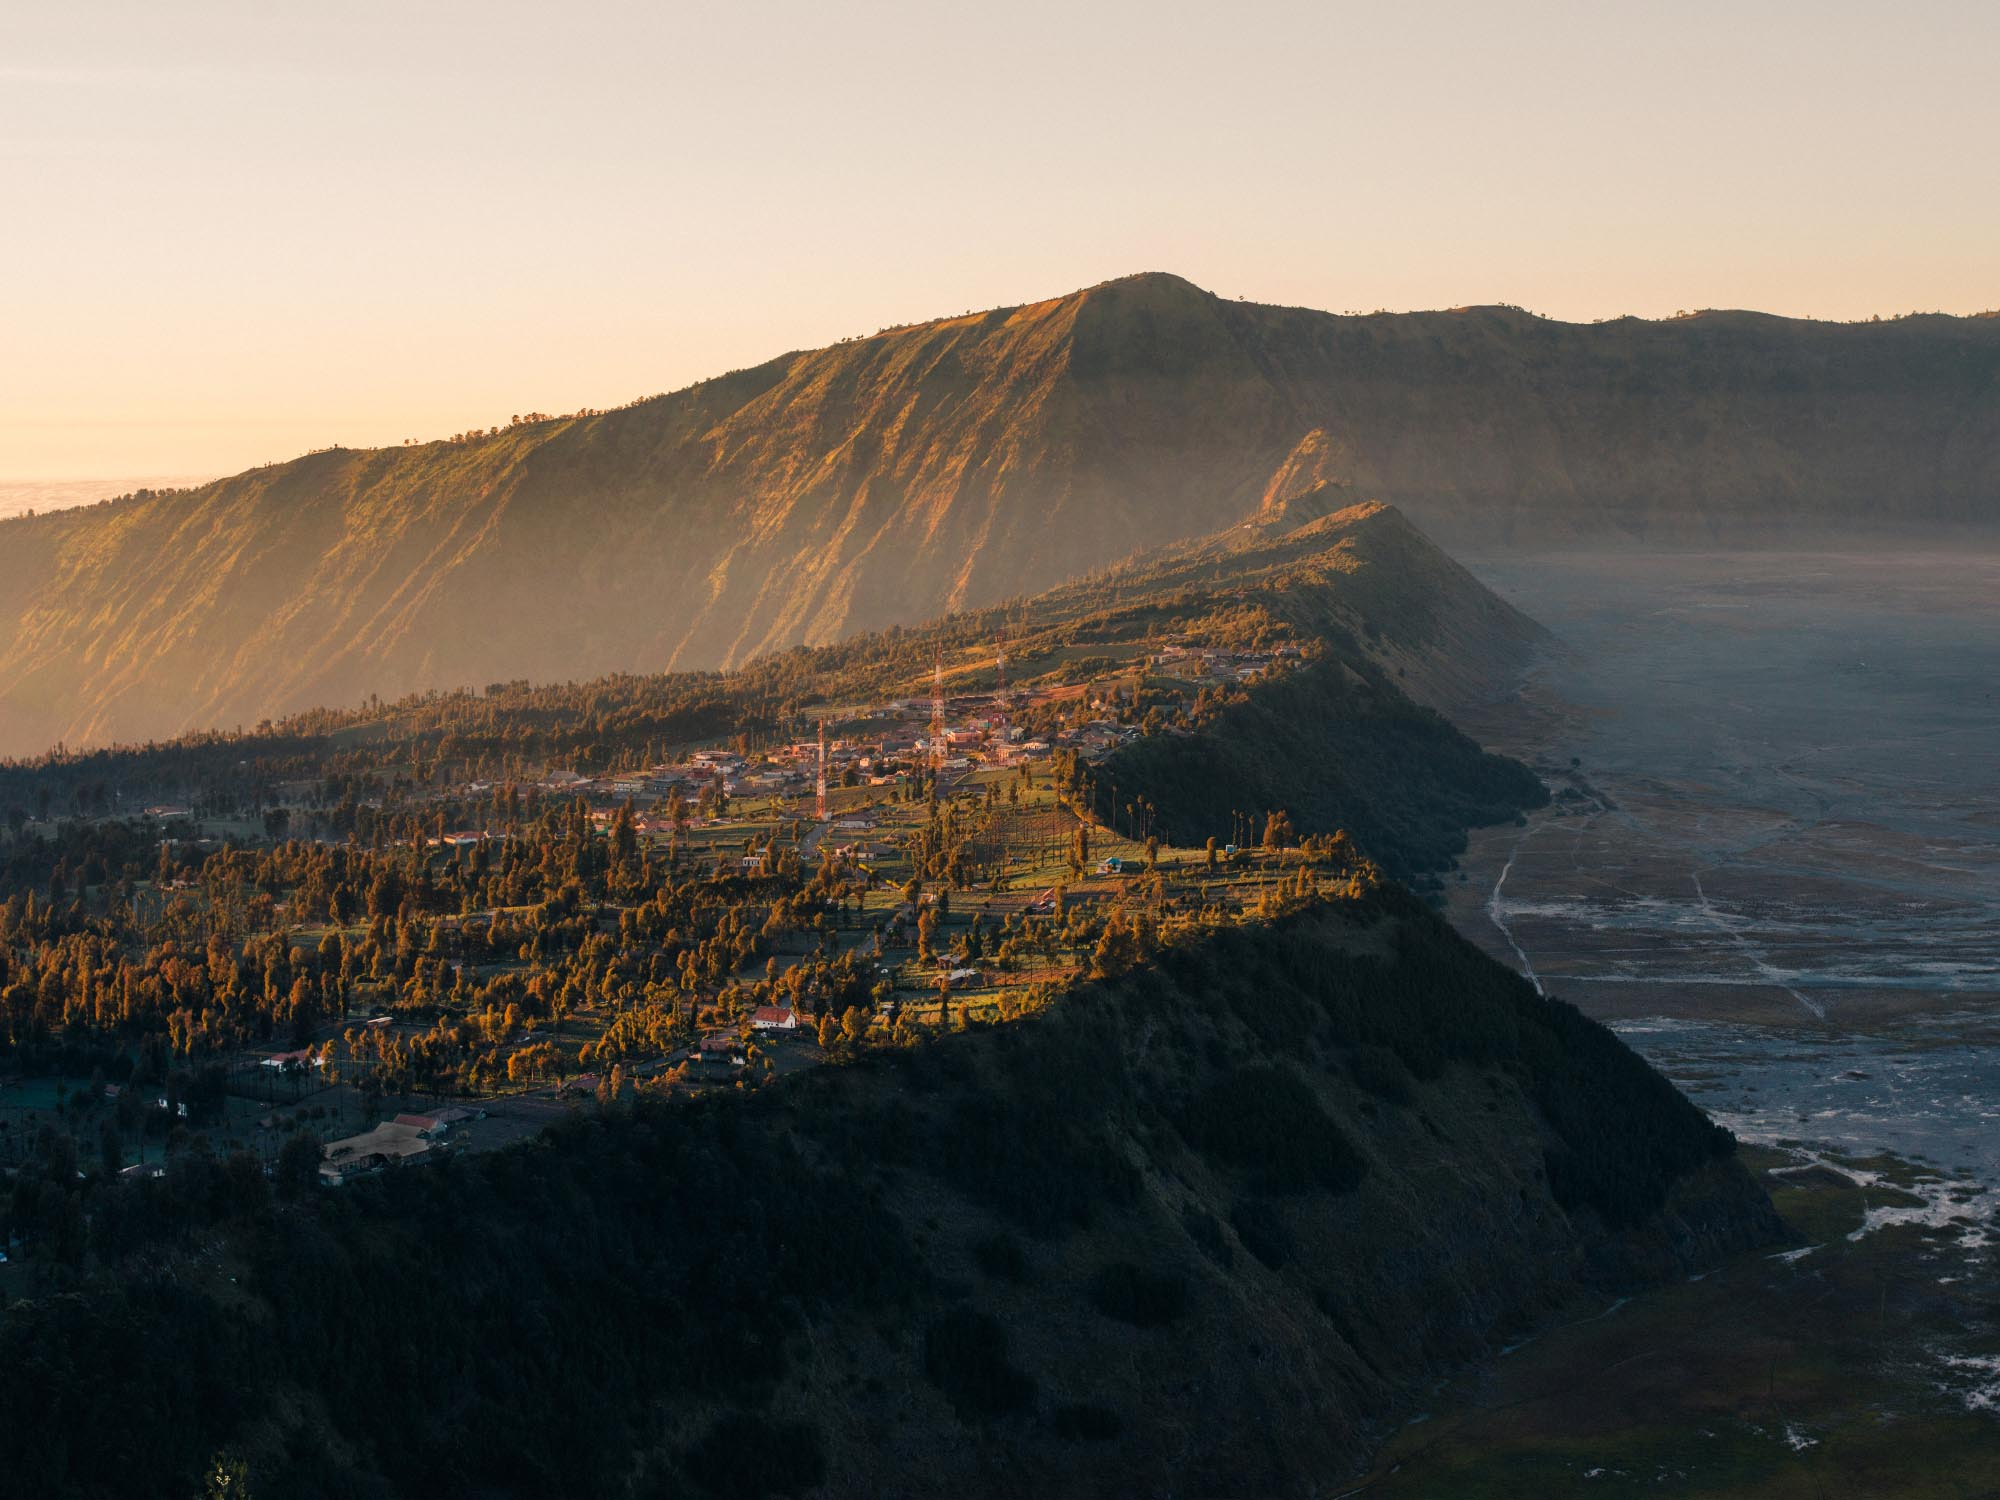 View of the town of Cemoro Lawang at sunrise. On the right: the Sea of Sand and the main caldera.